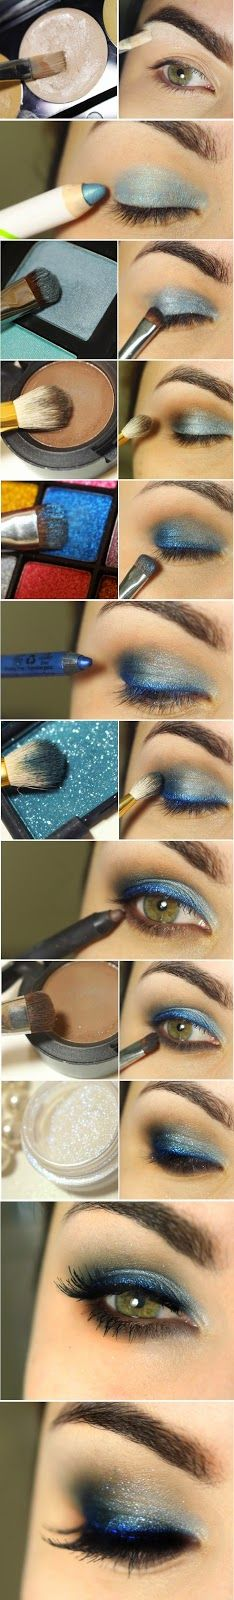 Gorgeous Pop Blue and Smokey Brown Shade Makeup Tutorials / Best LoLus Makeup Fashion